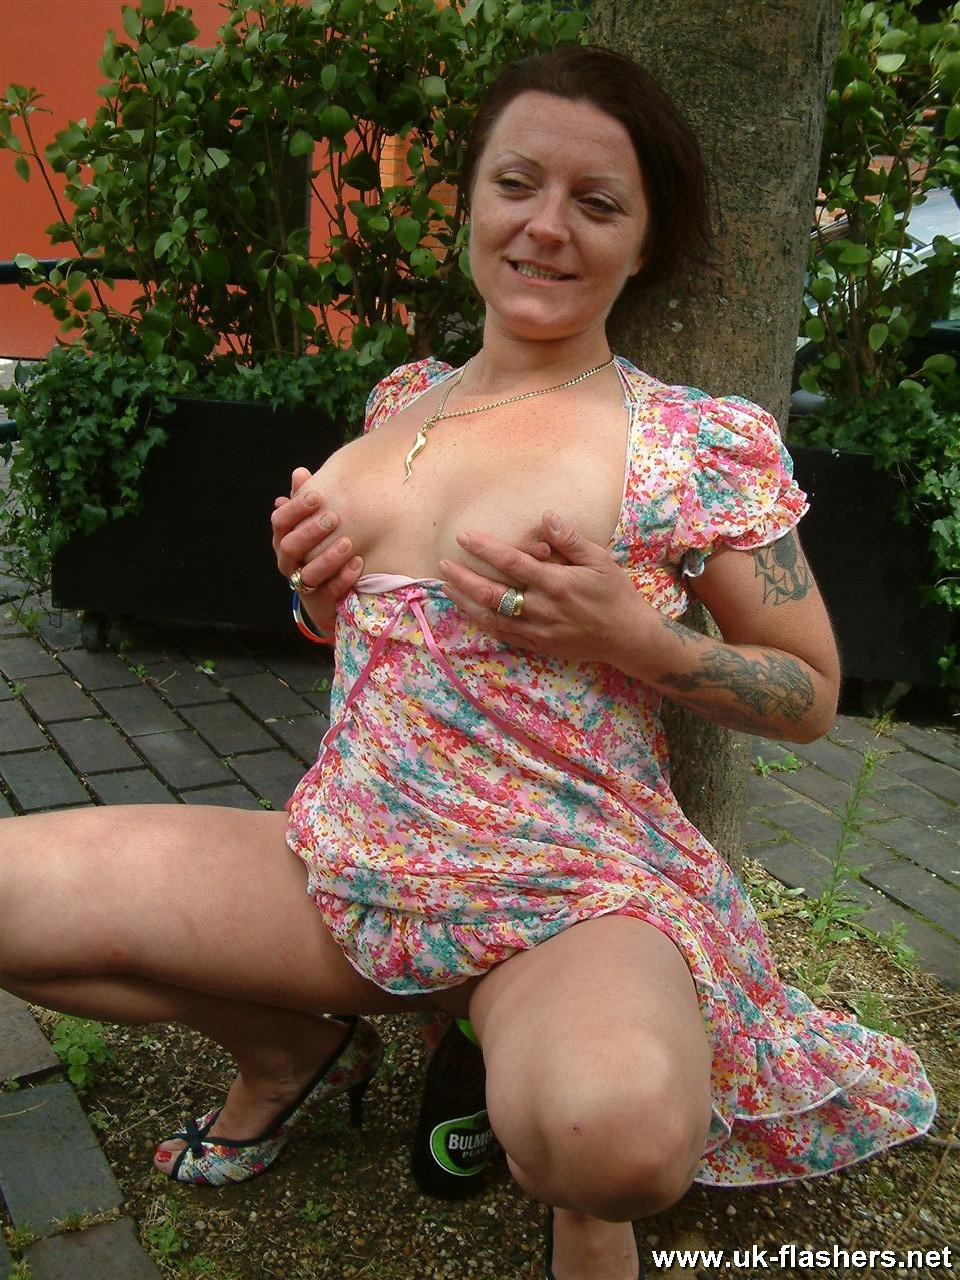 chubby naked mature woman outdoors